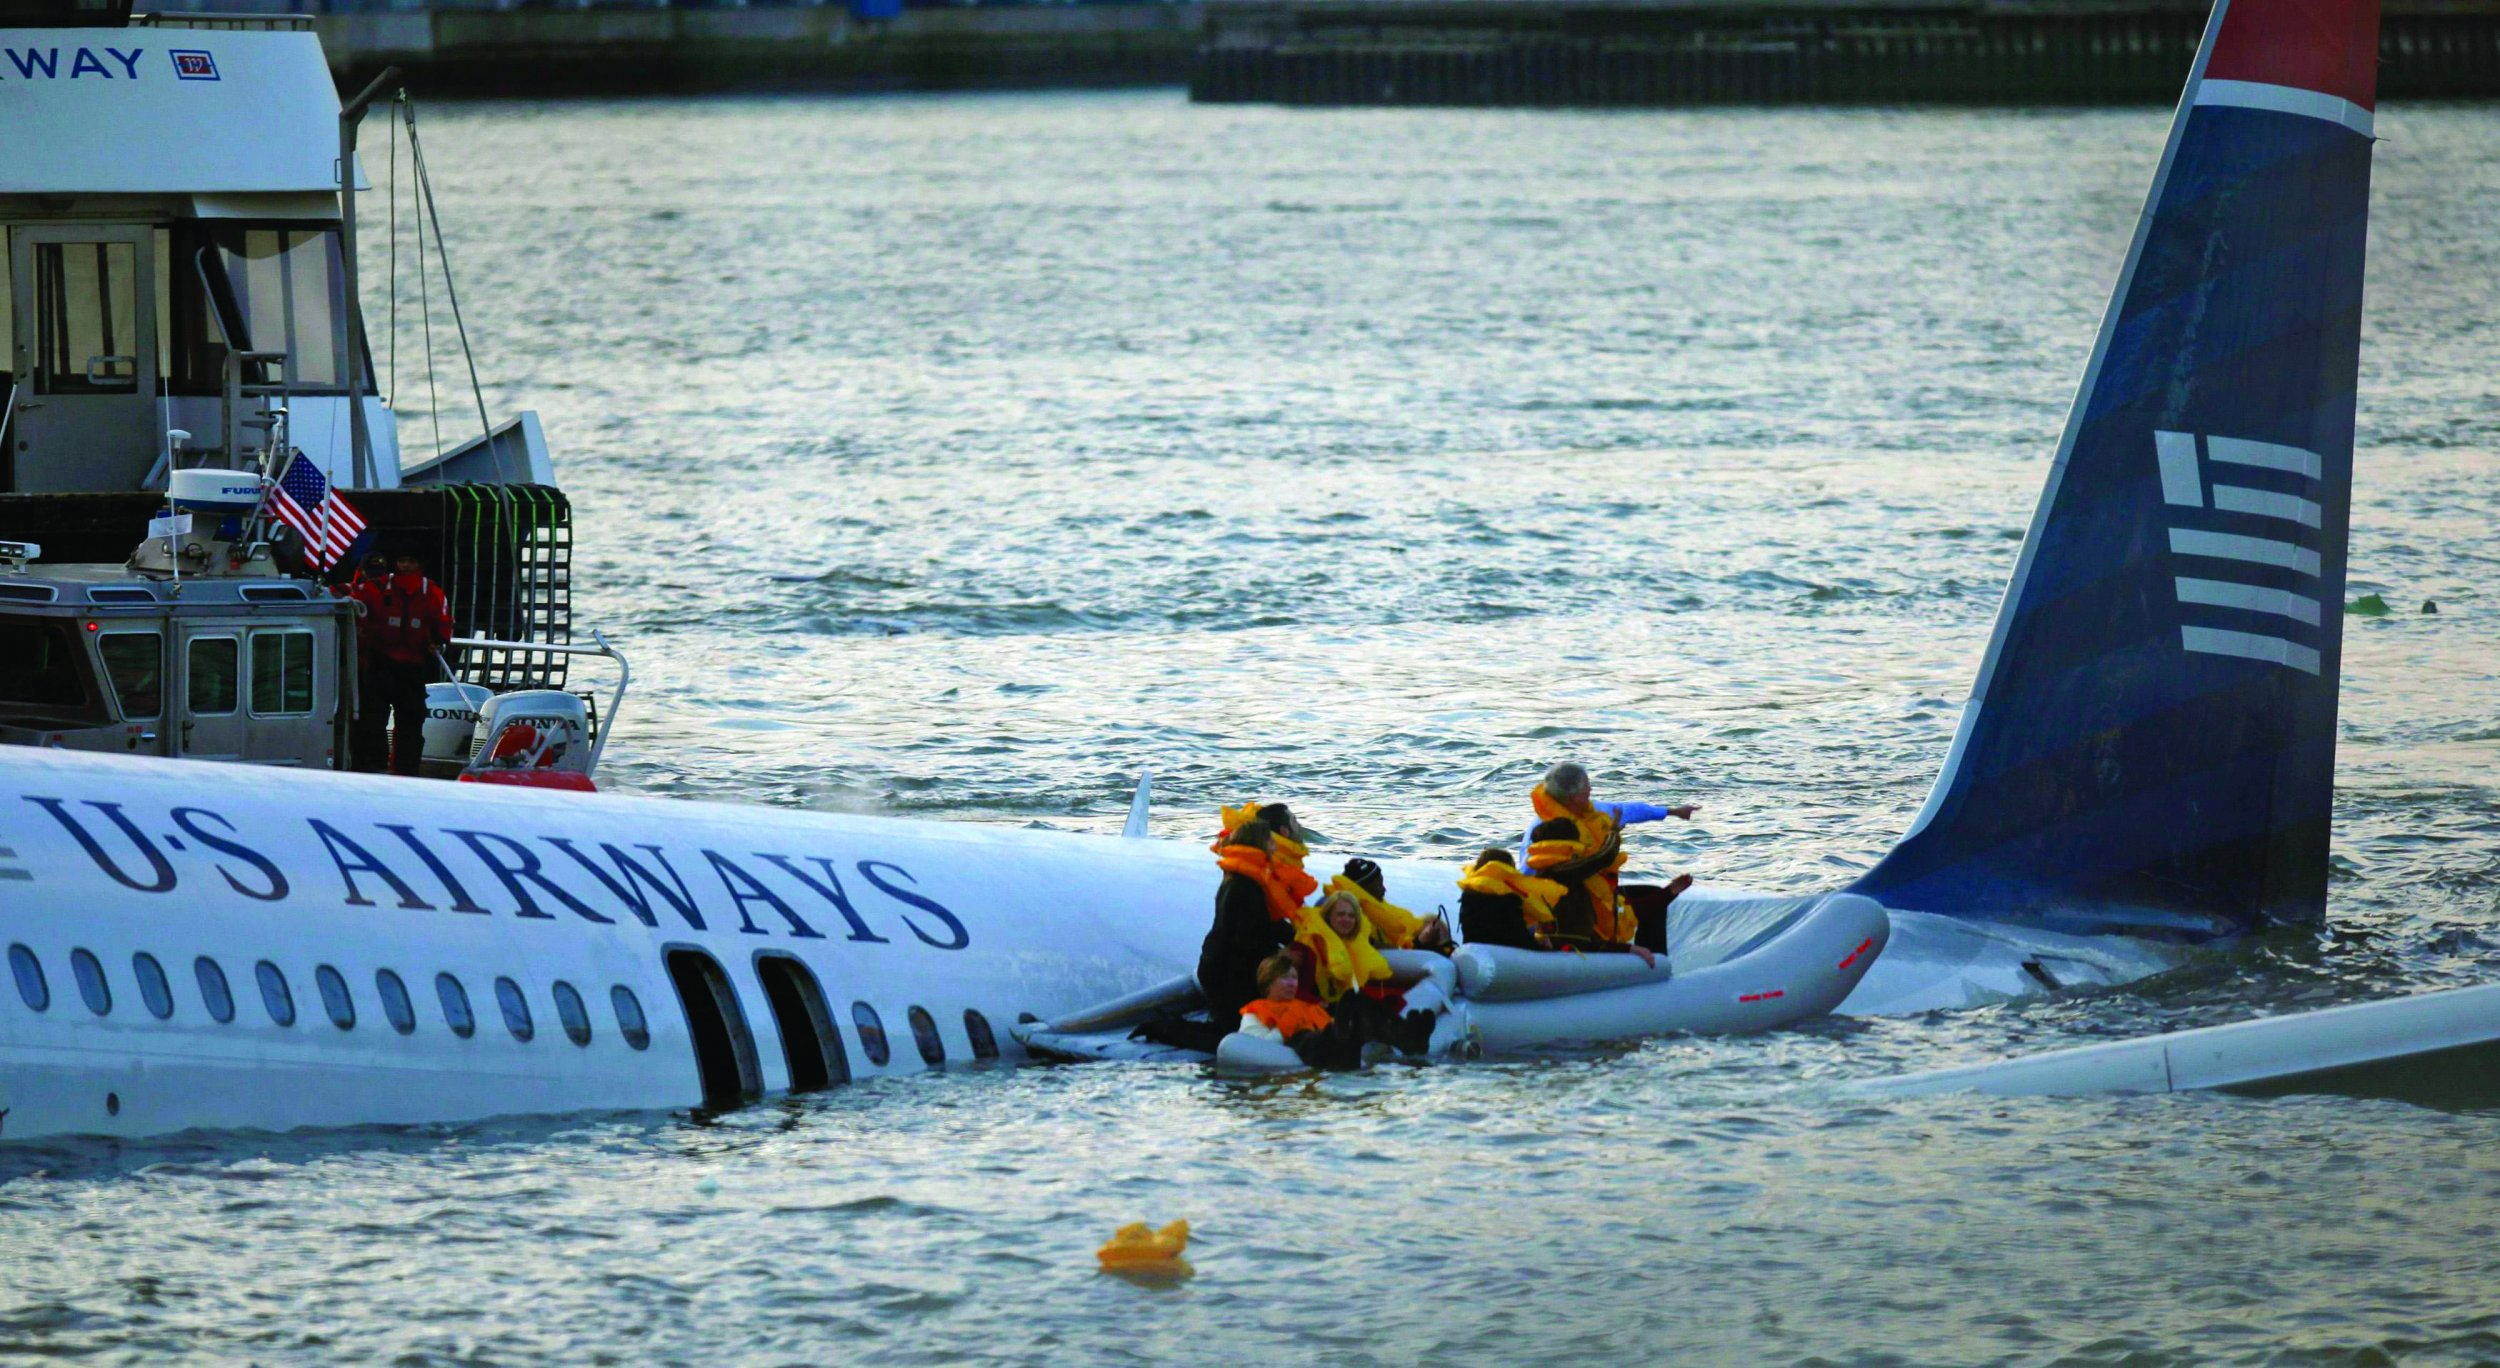 Sully Sullenberger Remembers The Miracle On The Hudson